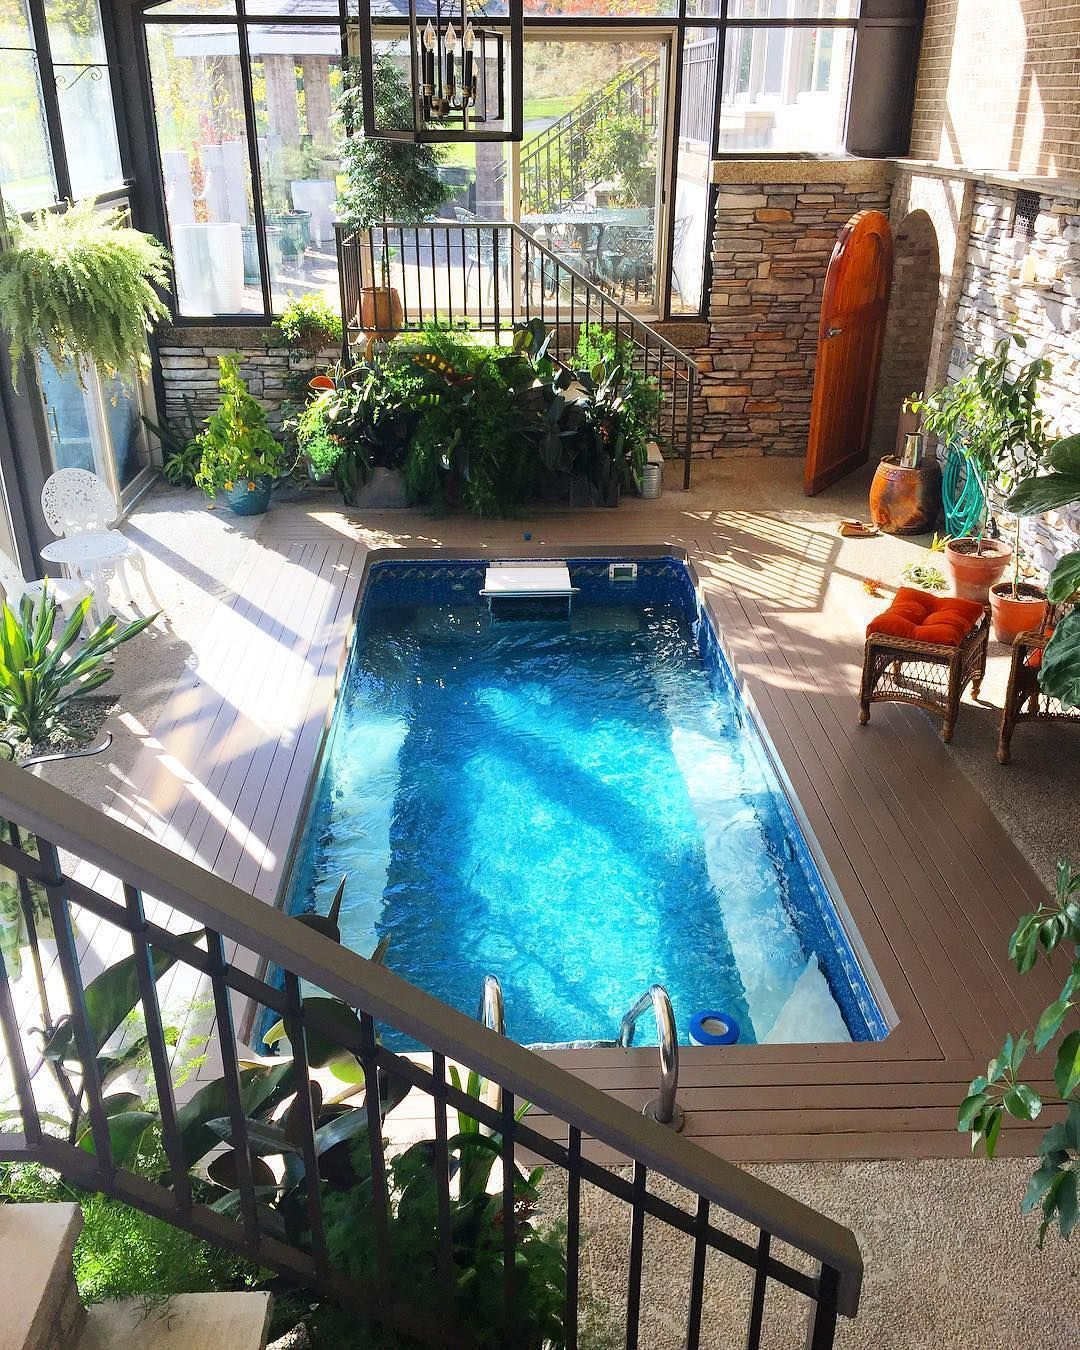 An Original Endless Pools Installed Indoors And In Ground In This Plant Filled Sunroom Indoor Swimming Pool Design Indoor Pool Design Small Indoor Pool